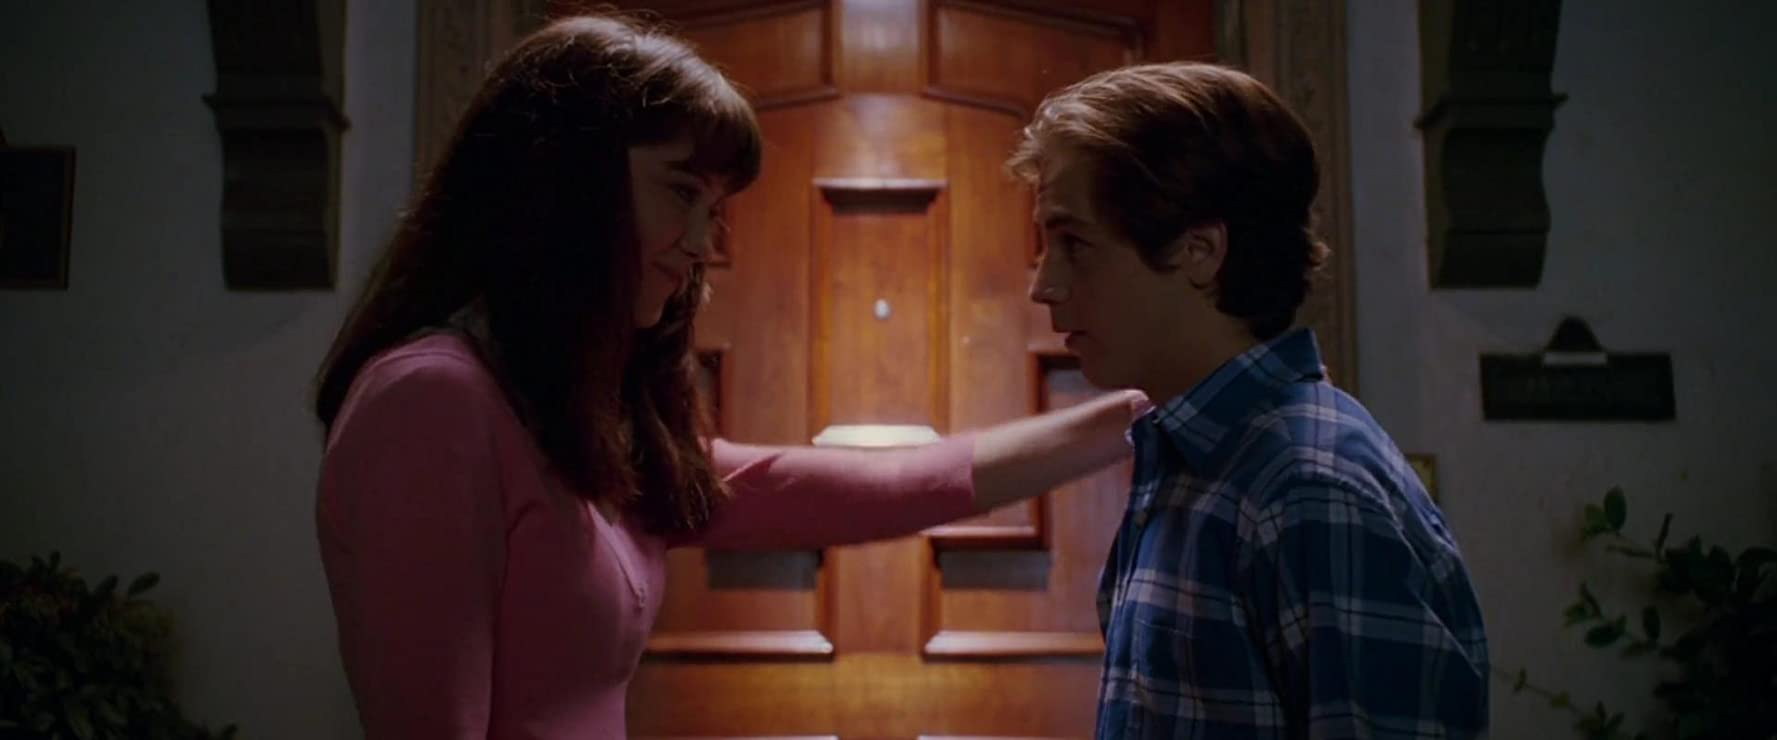 Michael Angarano and Mary Elizabeth Winstead in Sky High (2005)